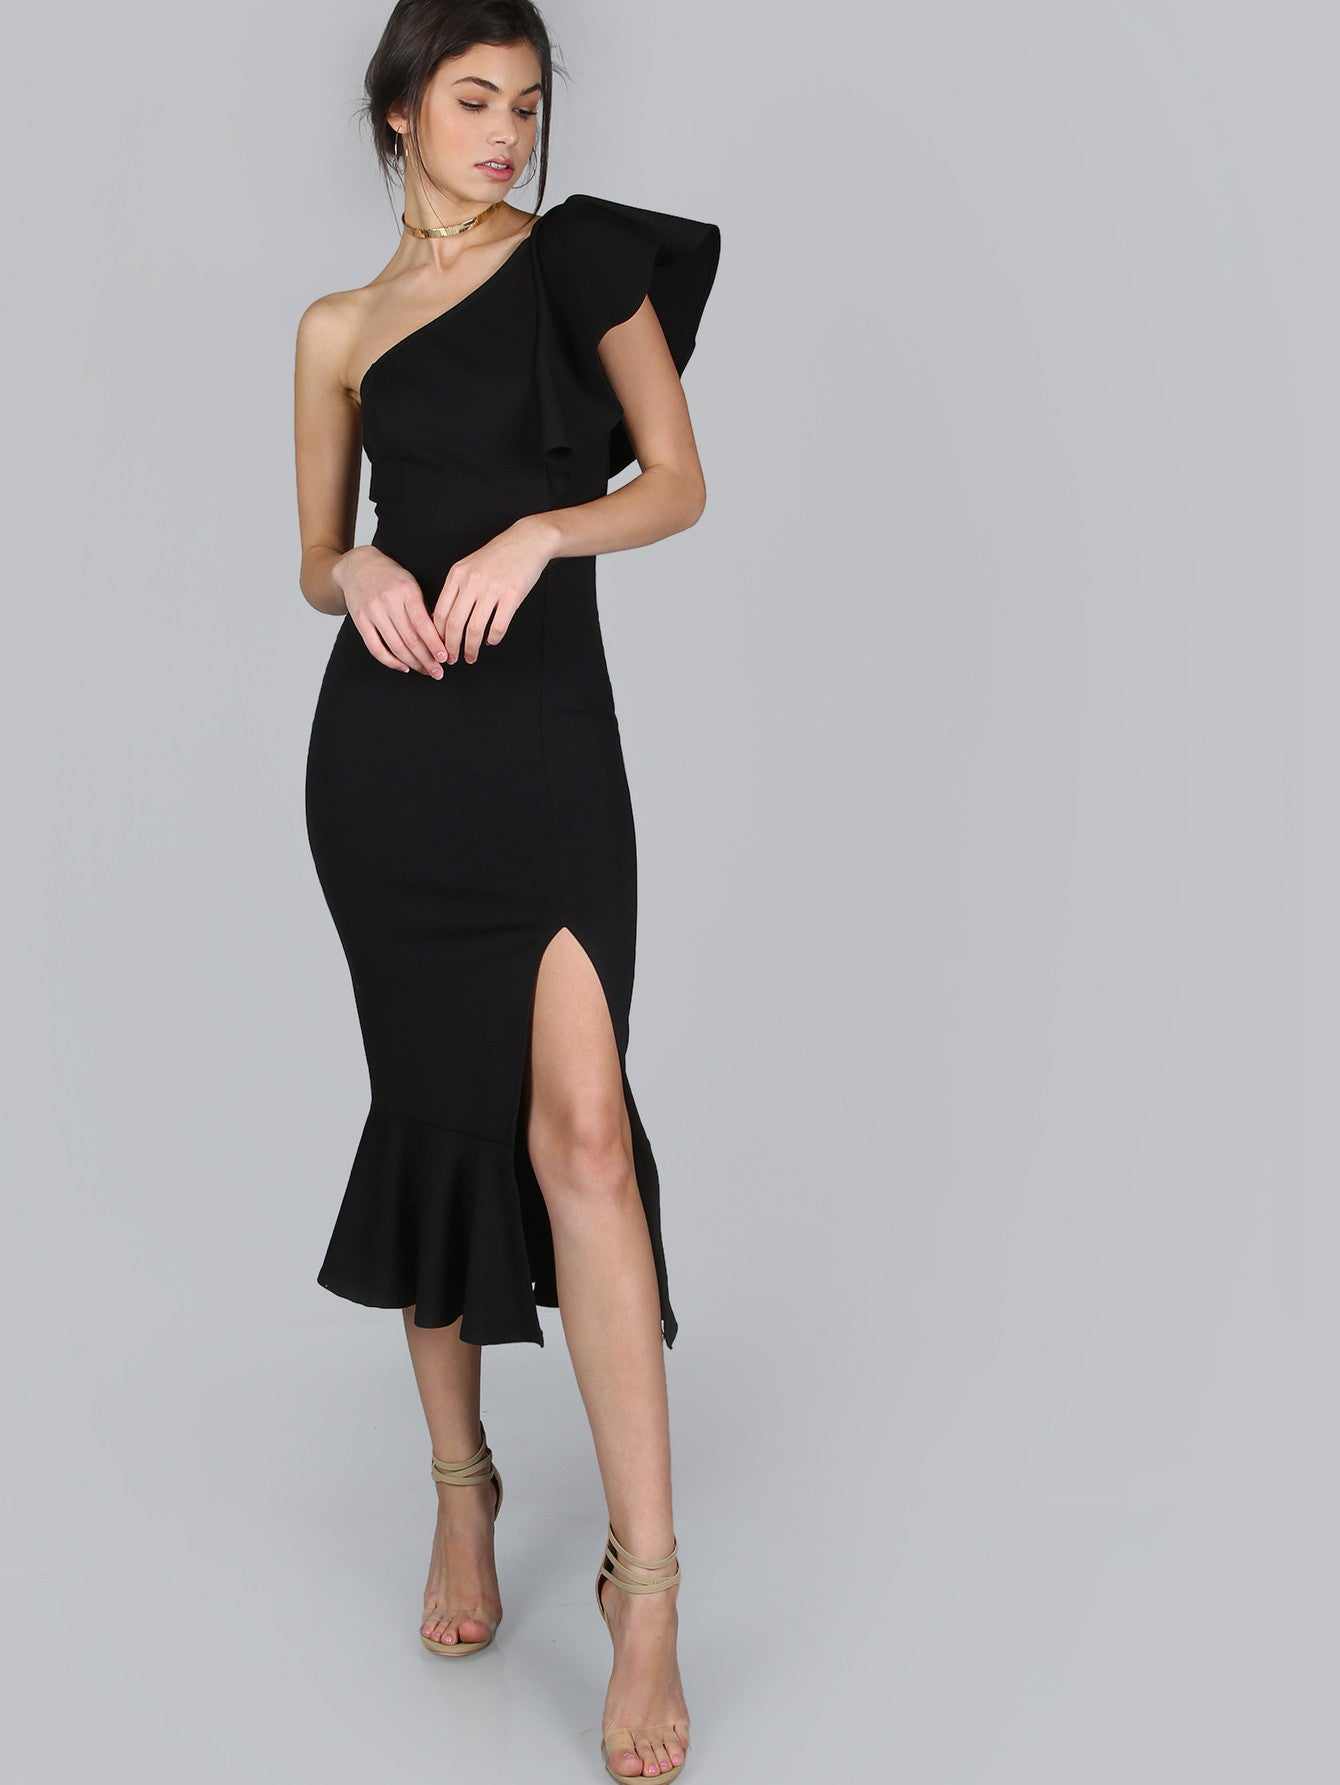 38ea87d171b5 Jade black one shoulder dress – Love Storey Boutique